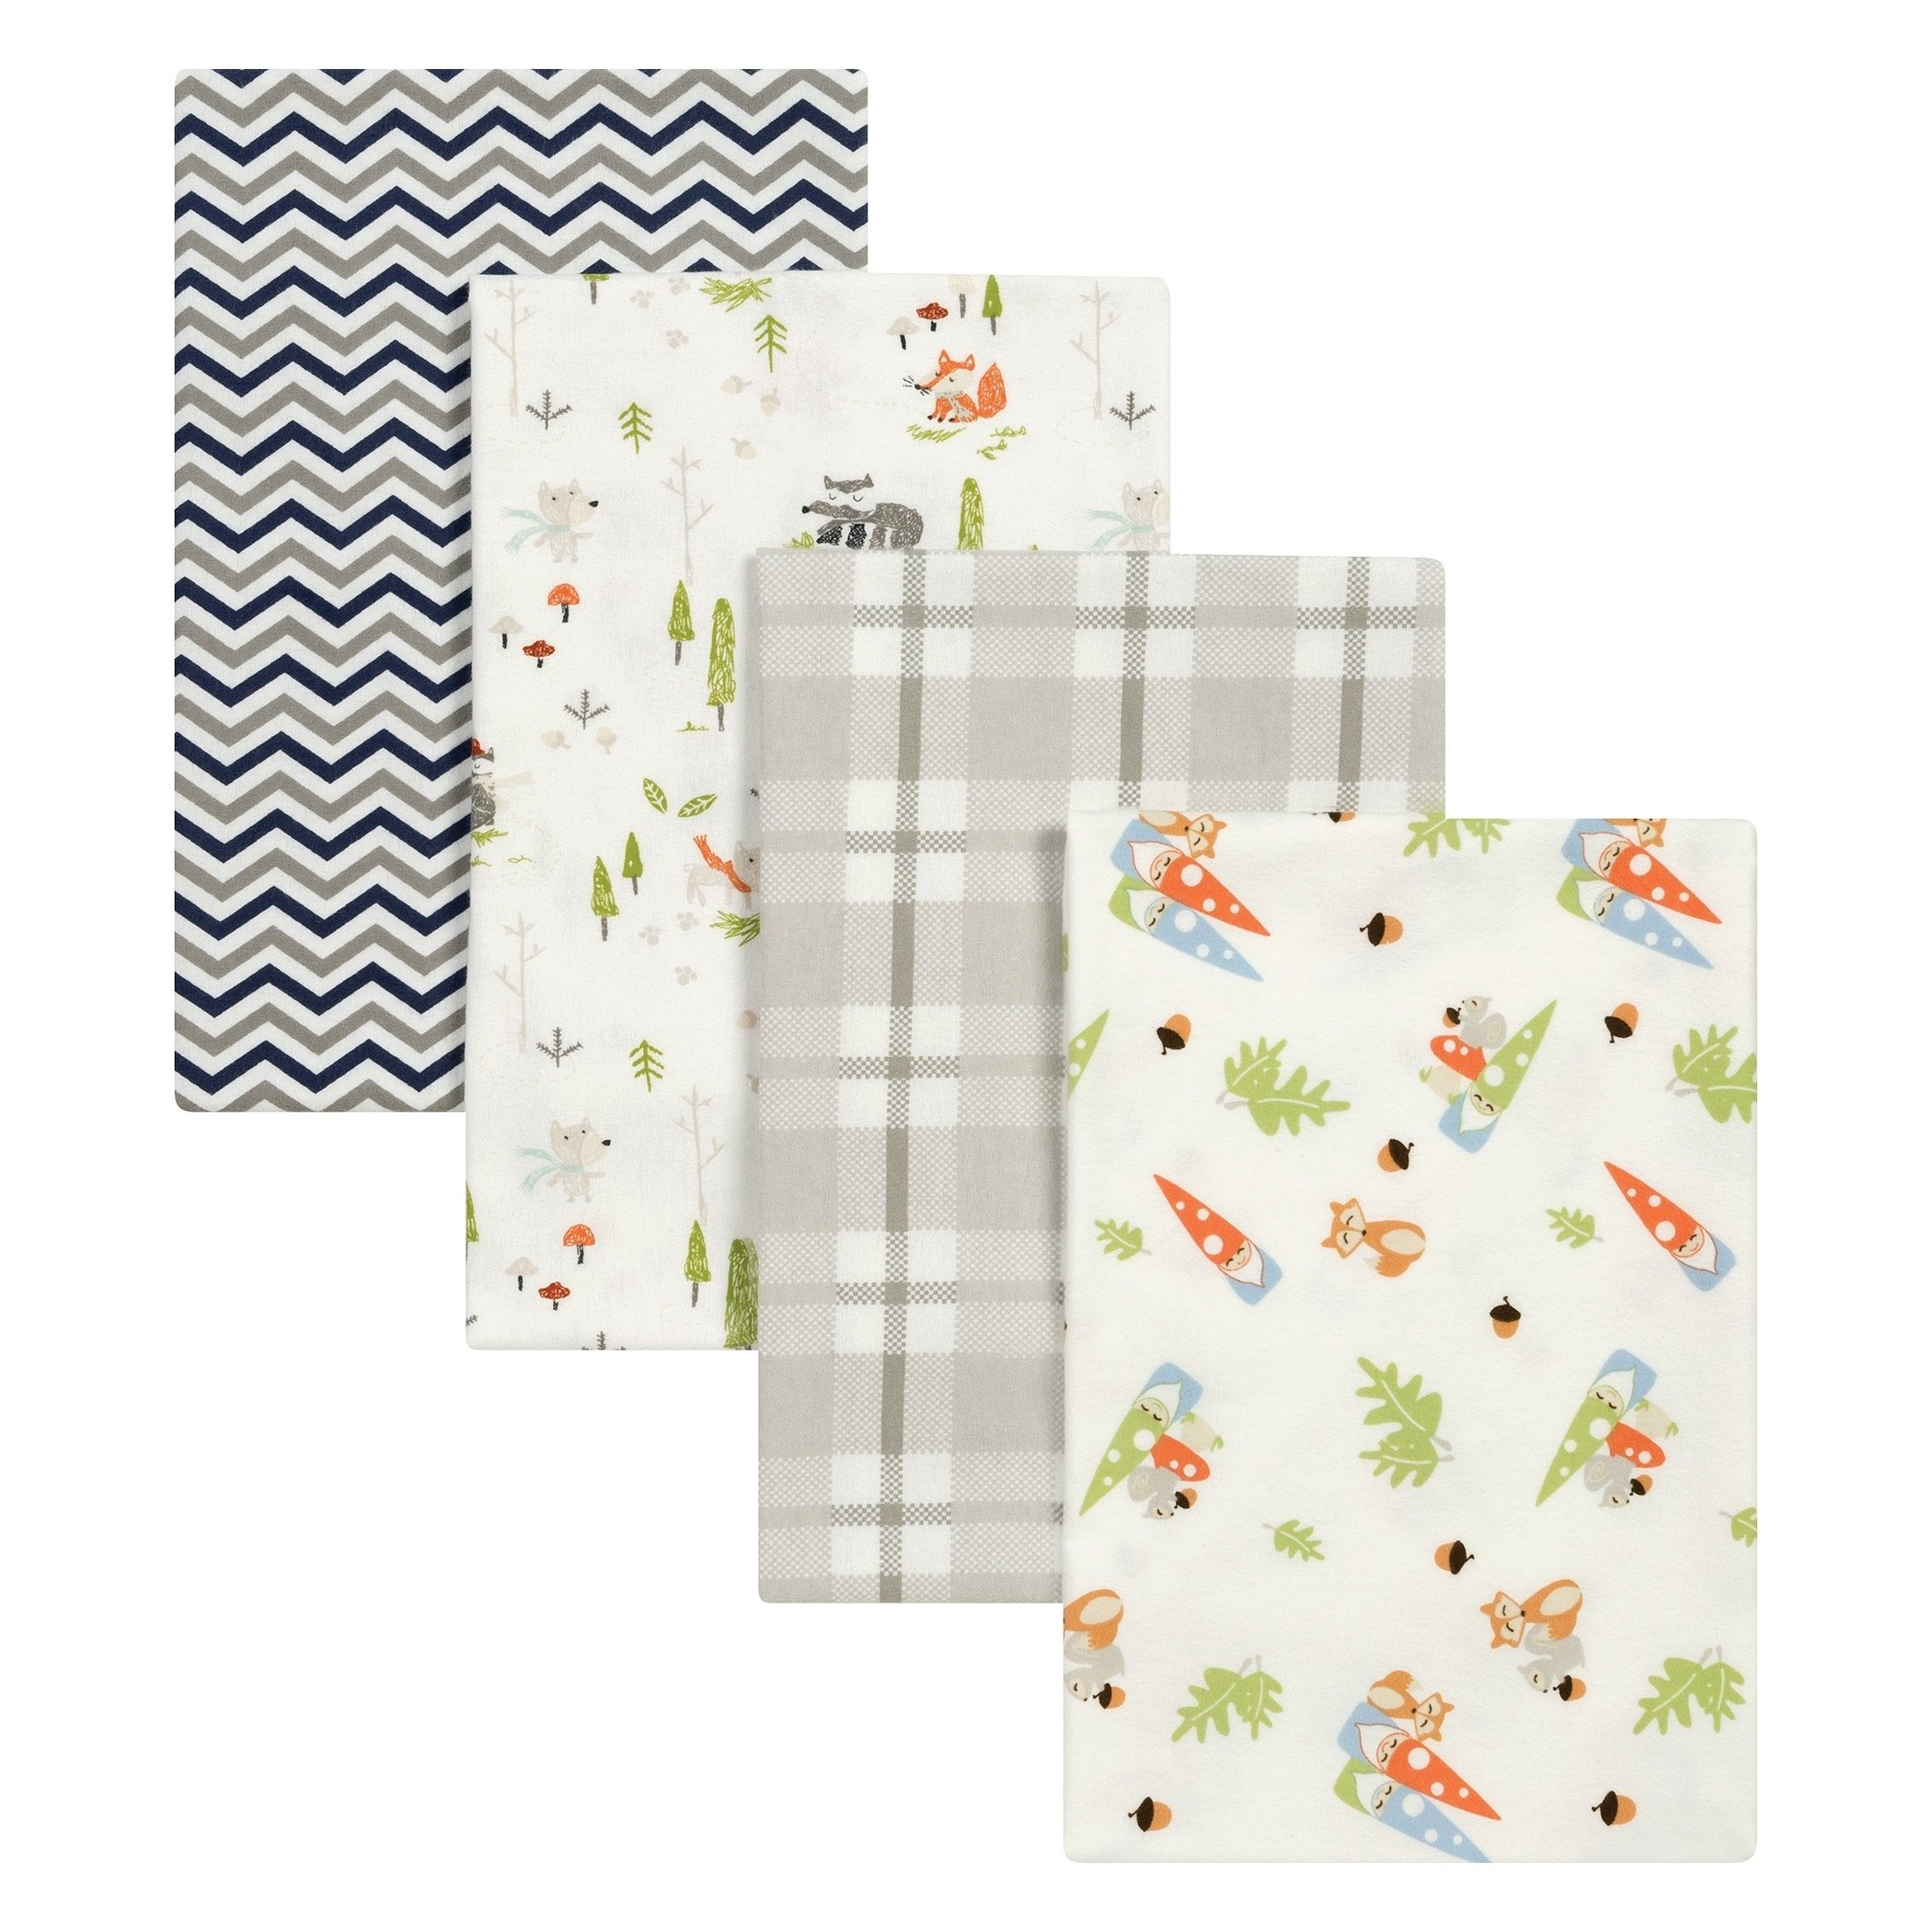 DE 4 Piece Beautiful Baby Red Green Grey Woodsy Gnomes Deluxe Flannel Blanket Set, Animal Themed Nursery Bedding, Infant Child Woods Forest Fox Racoon Garden Nature Cute Adorable, Cotton